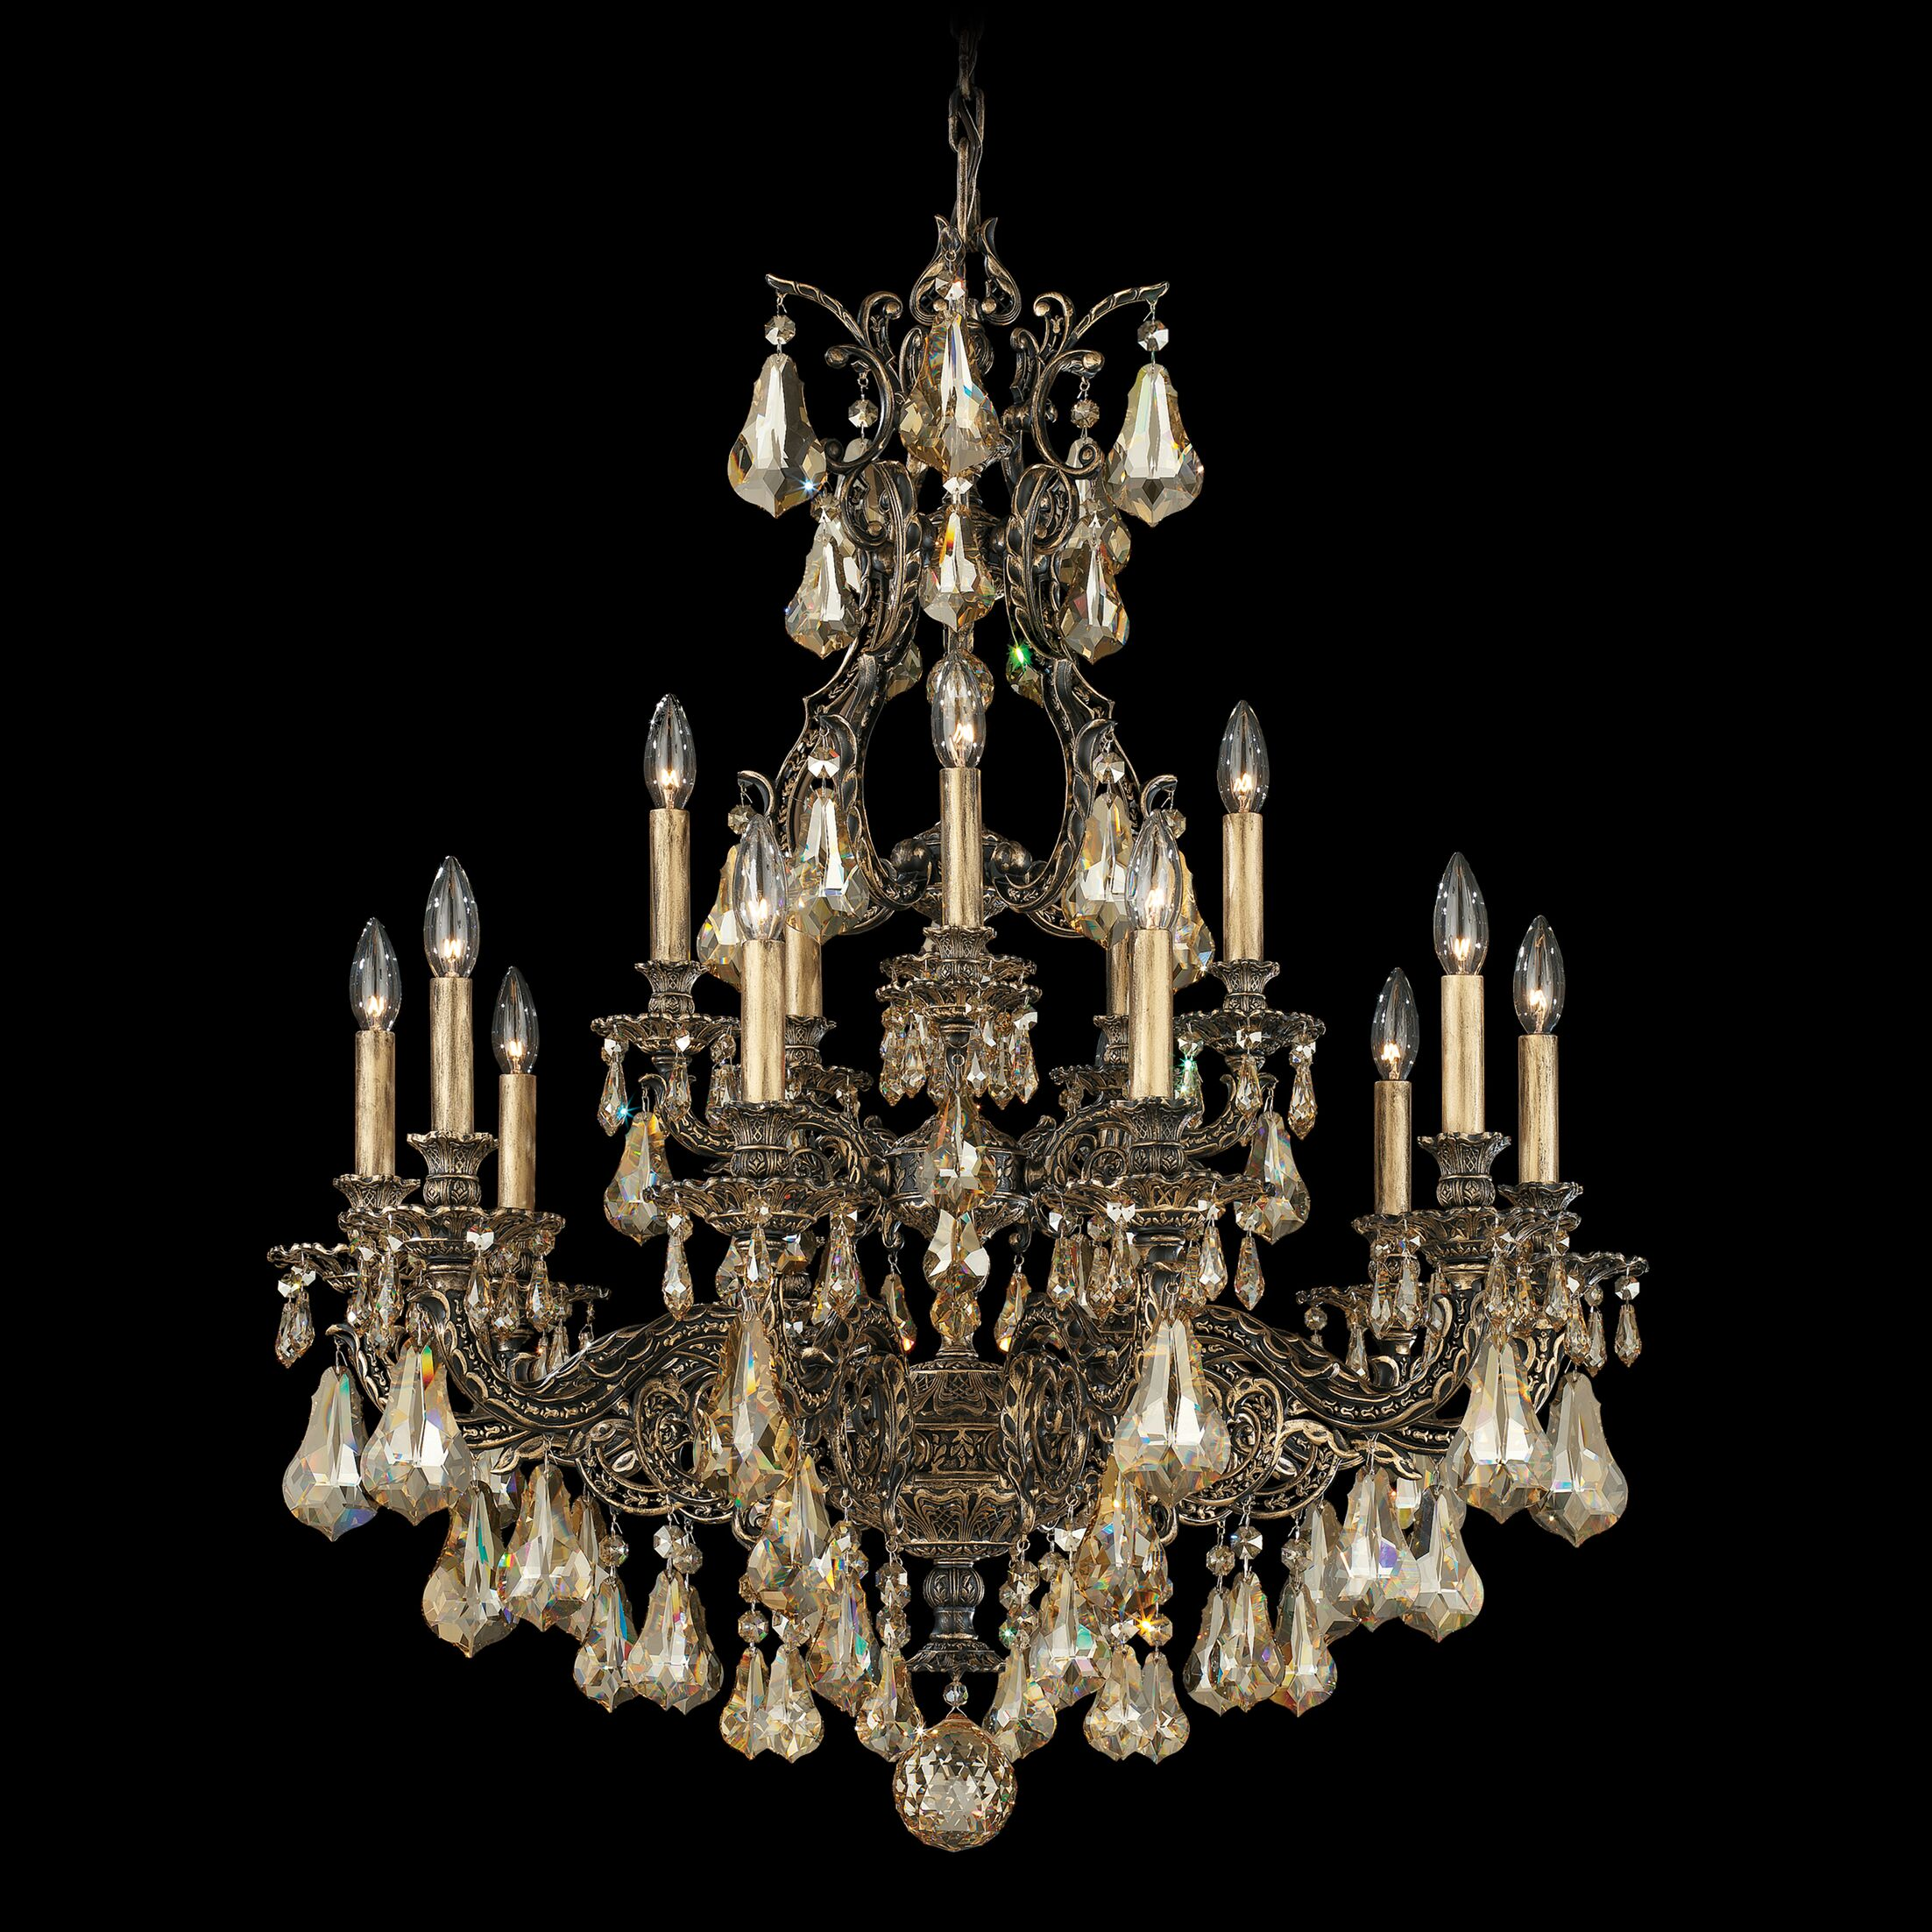 Sophia 15-Light Chandelier Finish: Antique Silver, Crystal Color: Swarovski Spectra